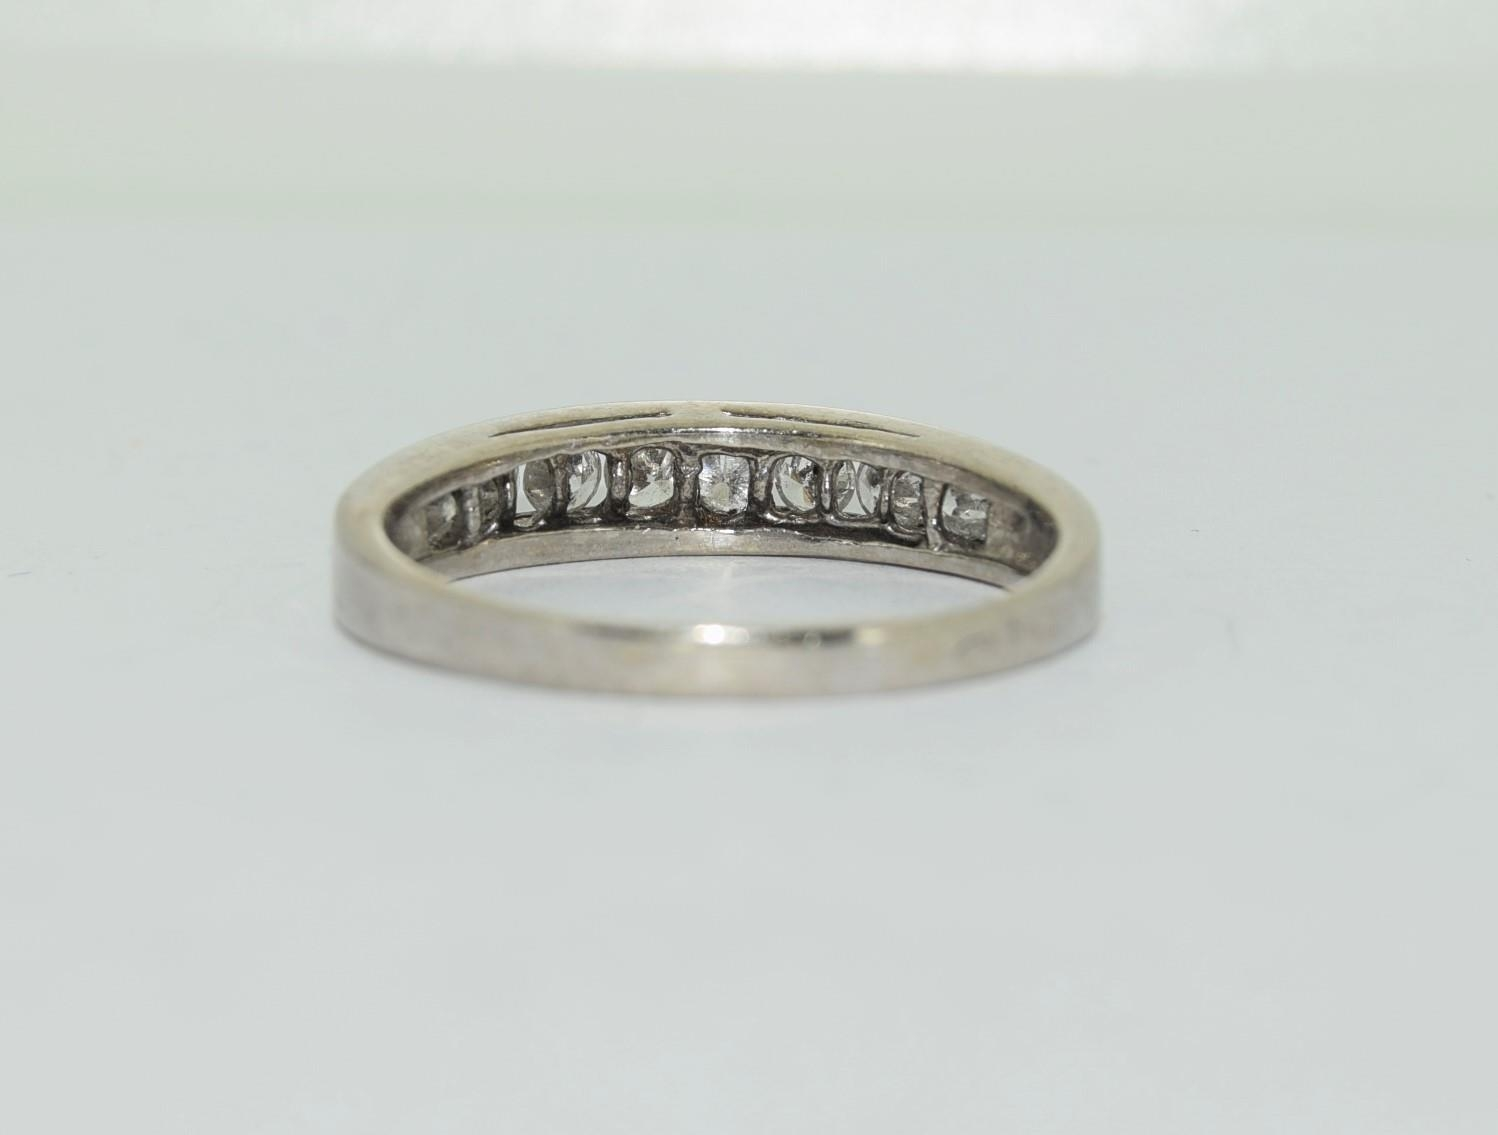 18ct white gold diamond half eternity ring approx 80 pionts size T - Image 3 of 6